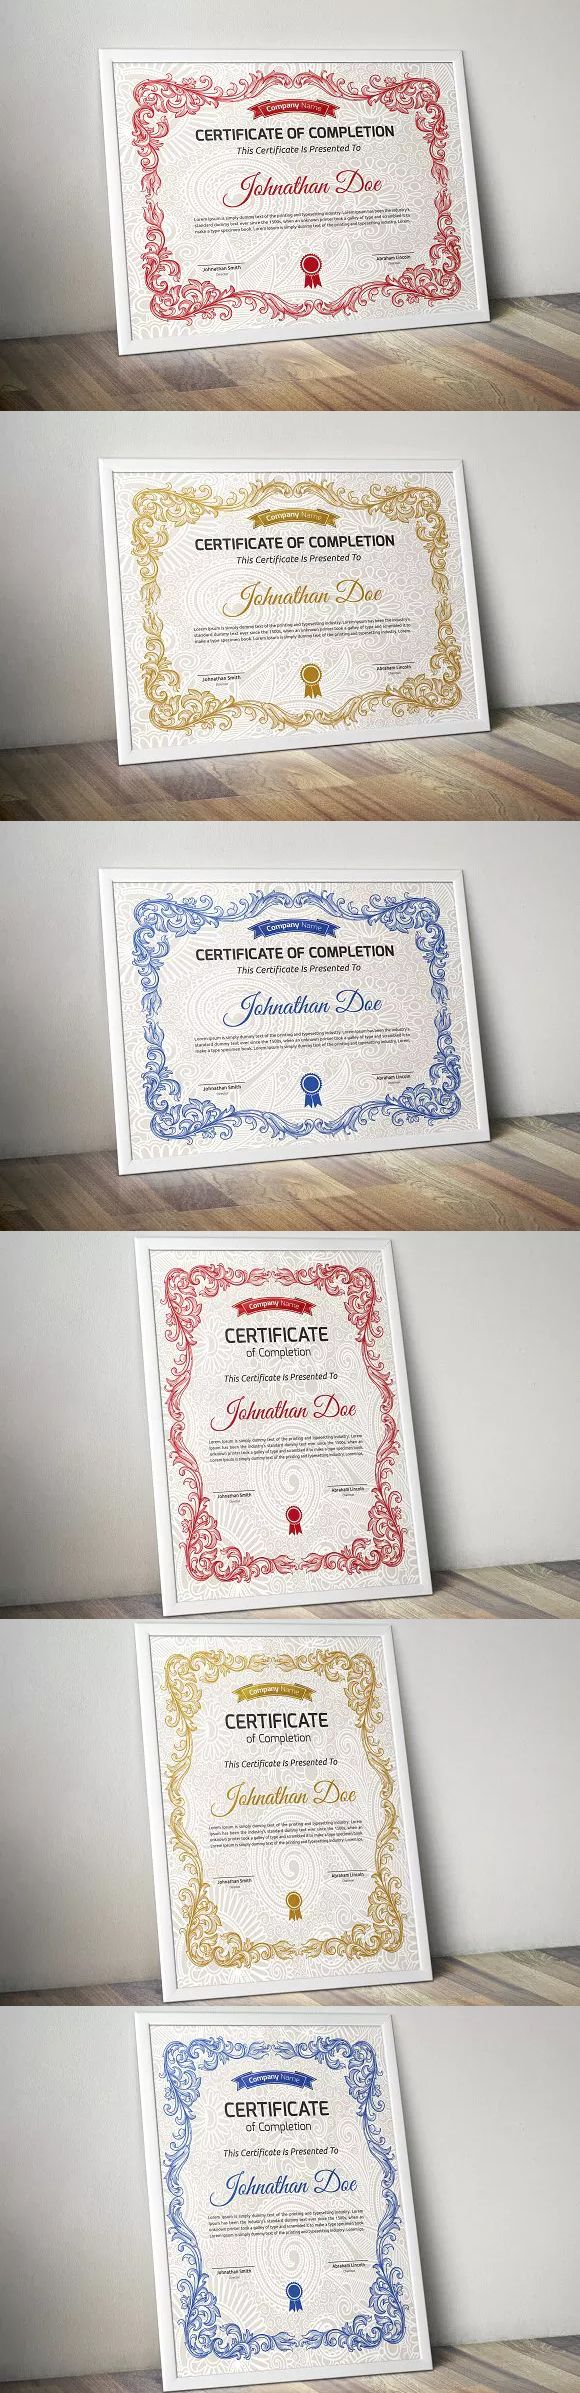 34 best certificate templates images on pinterest certificate certificate template eps yadclub Choice Image